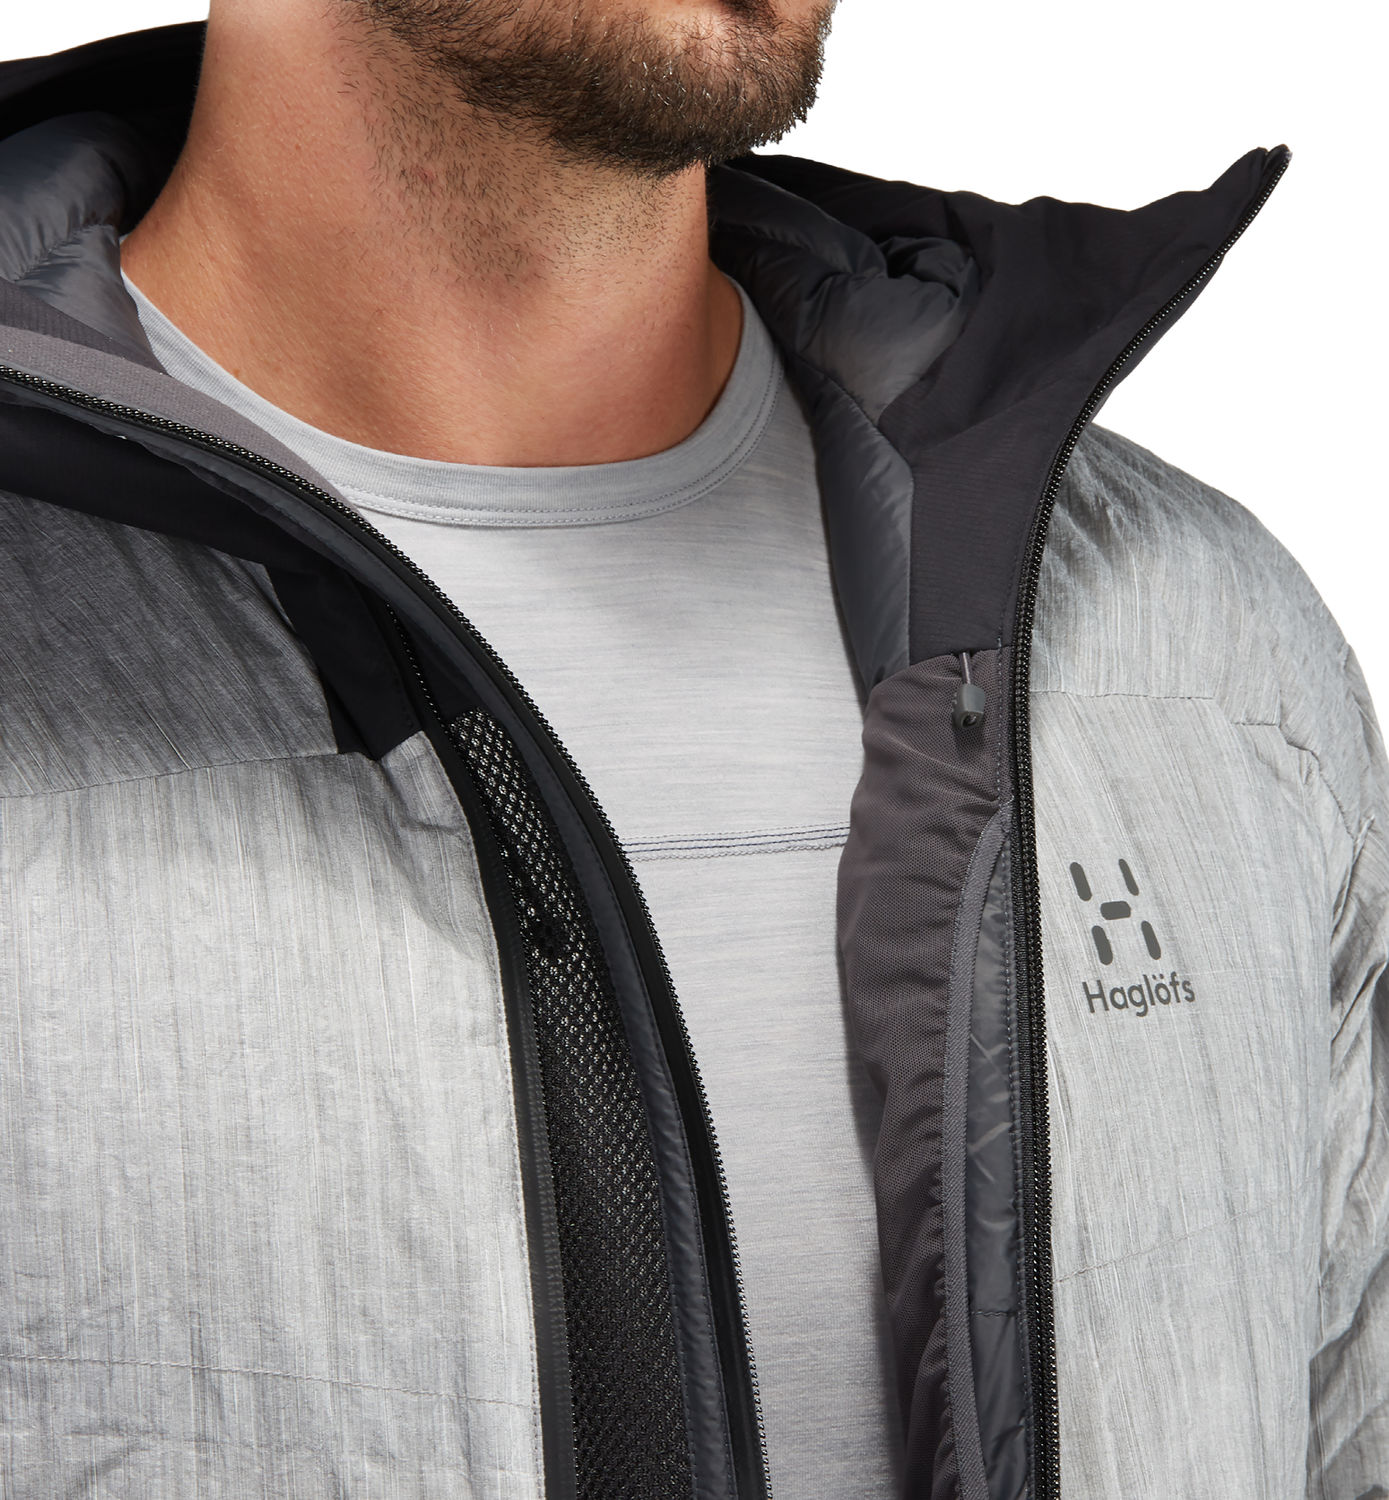 haglofs v-series jacket